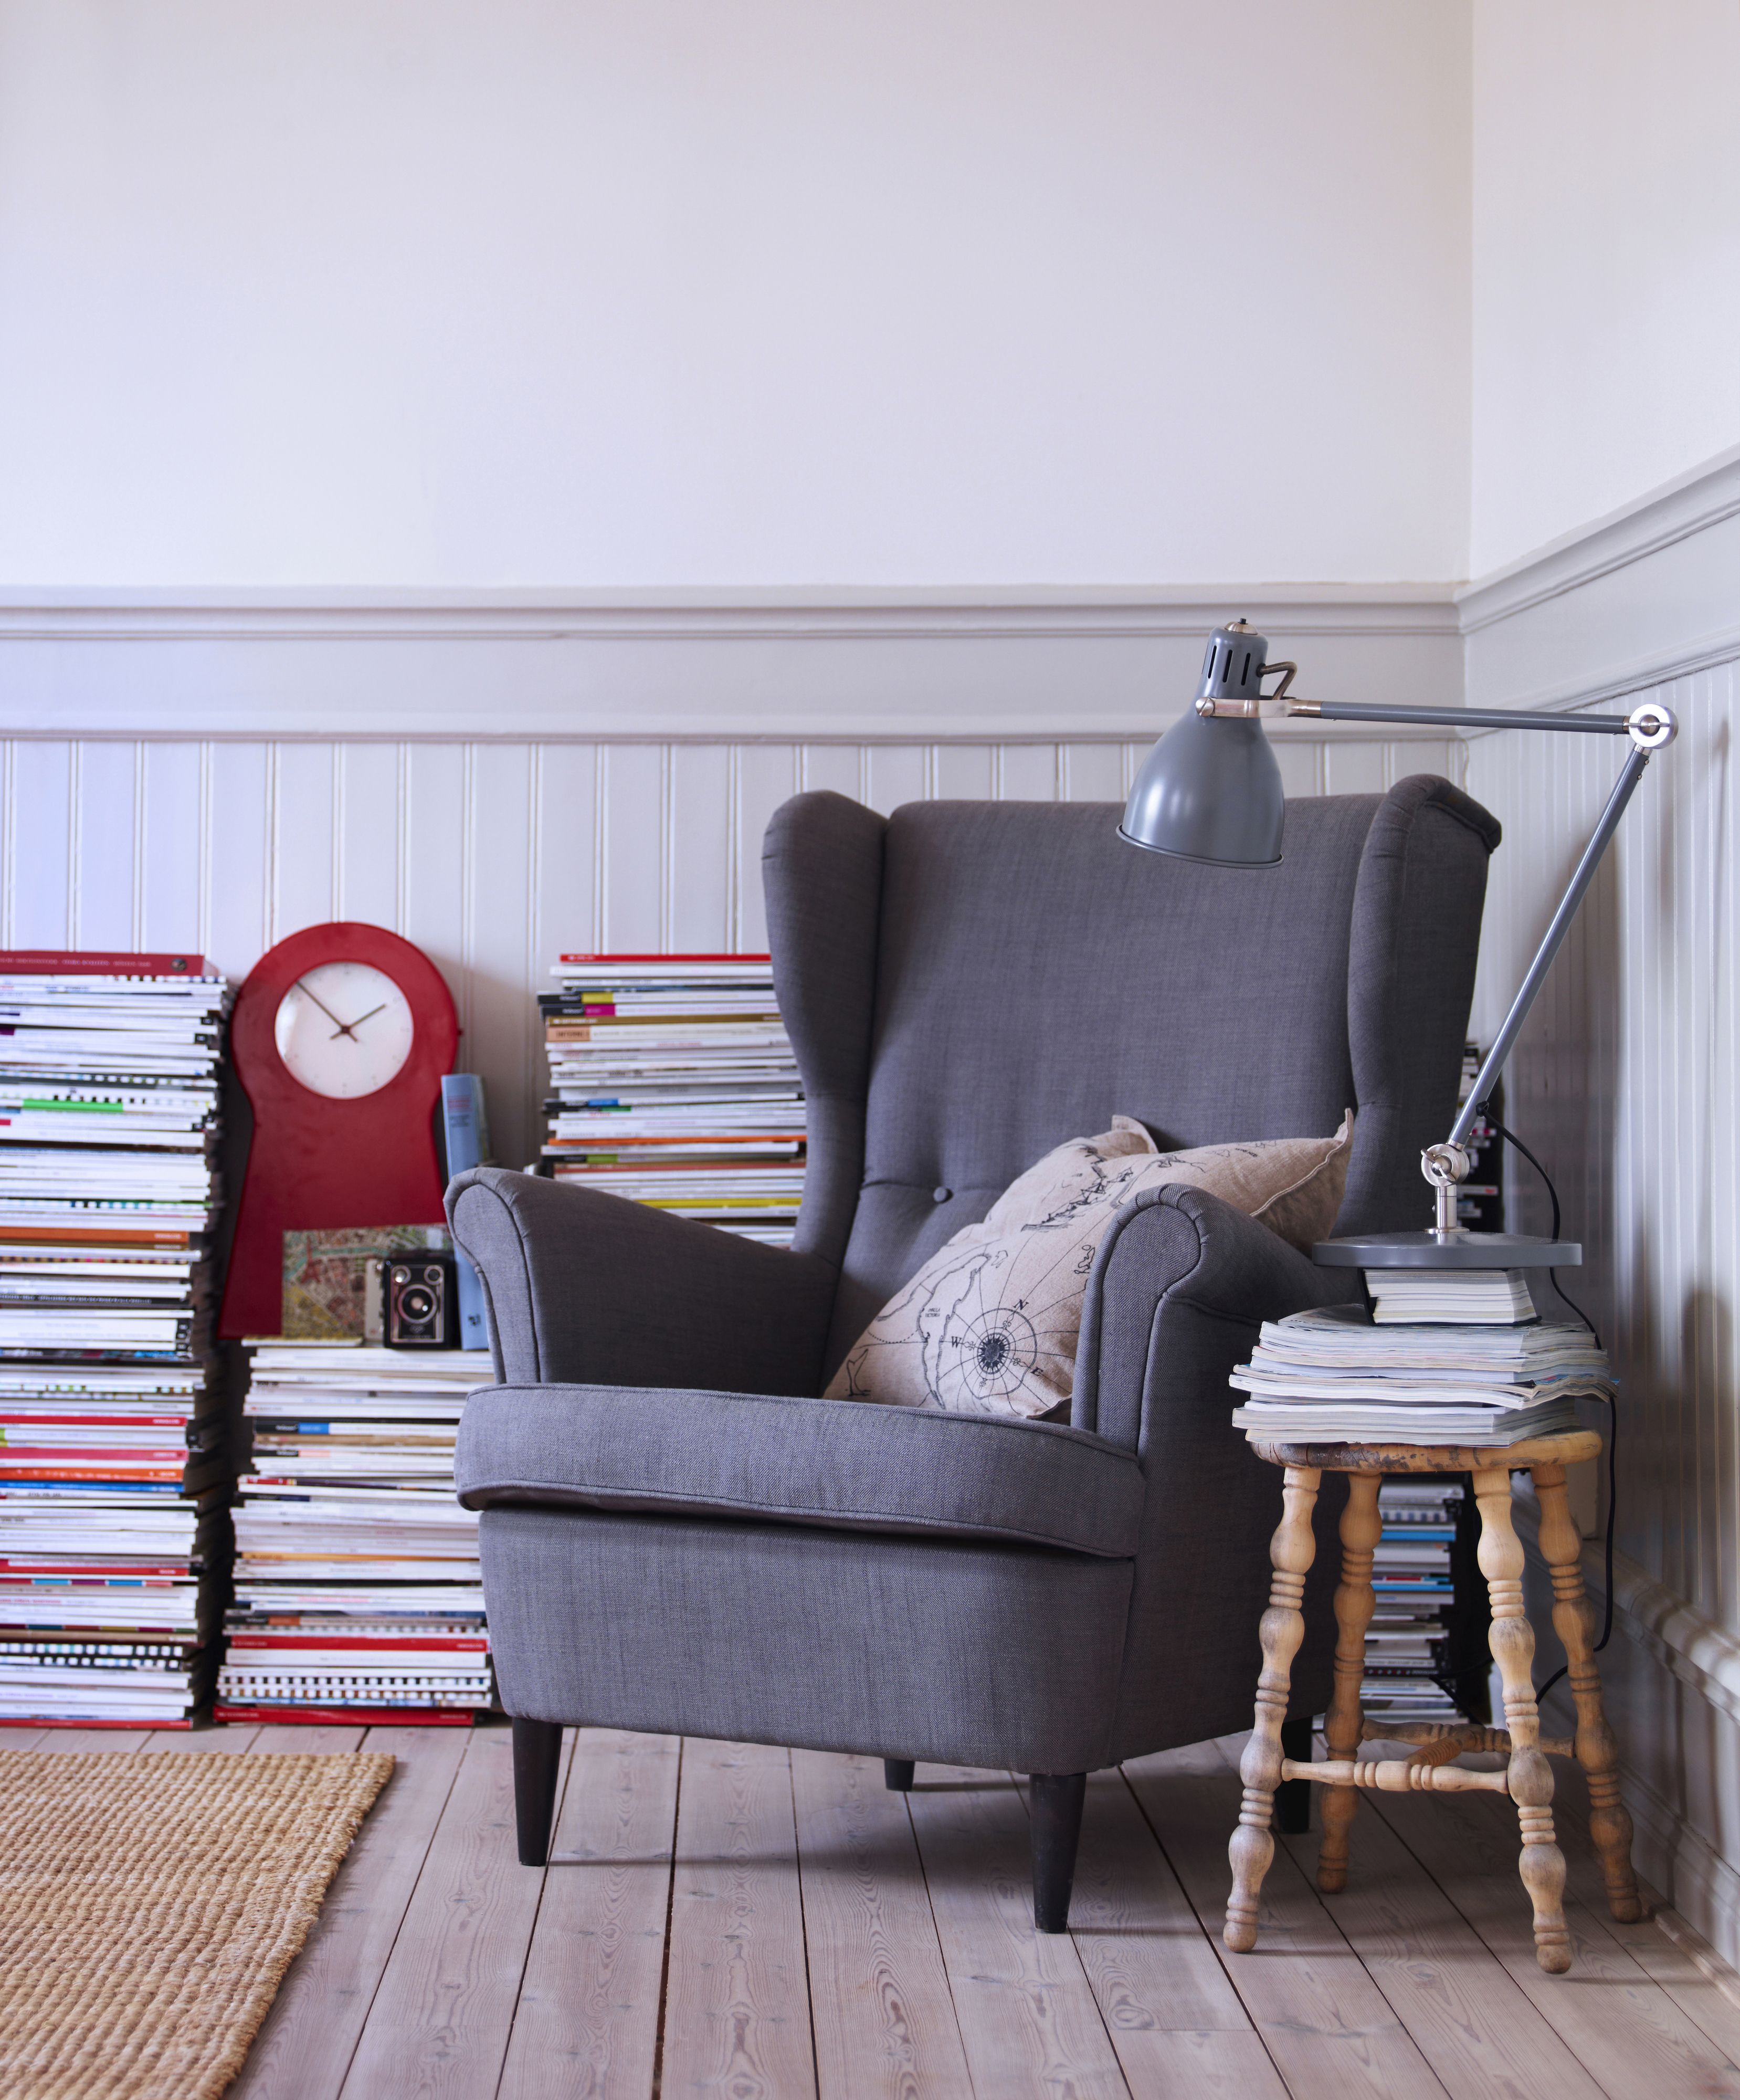 Lesesessel Ikea That S A Reading Chair Dream Home Pinterest Ikea Living